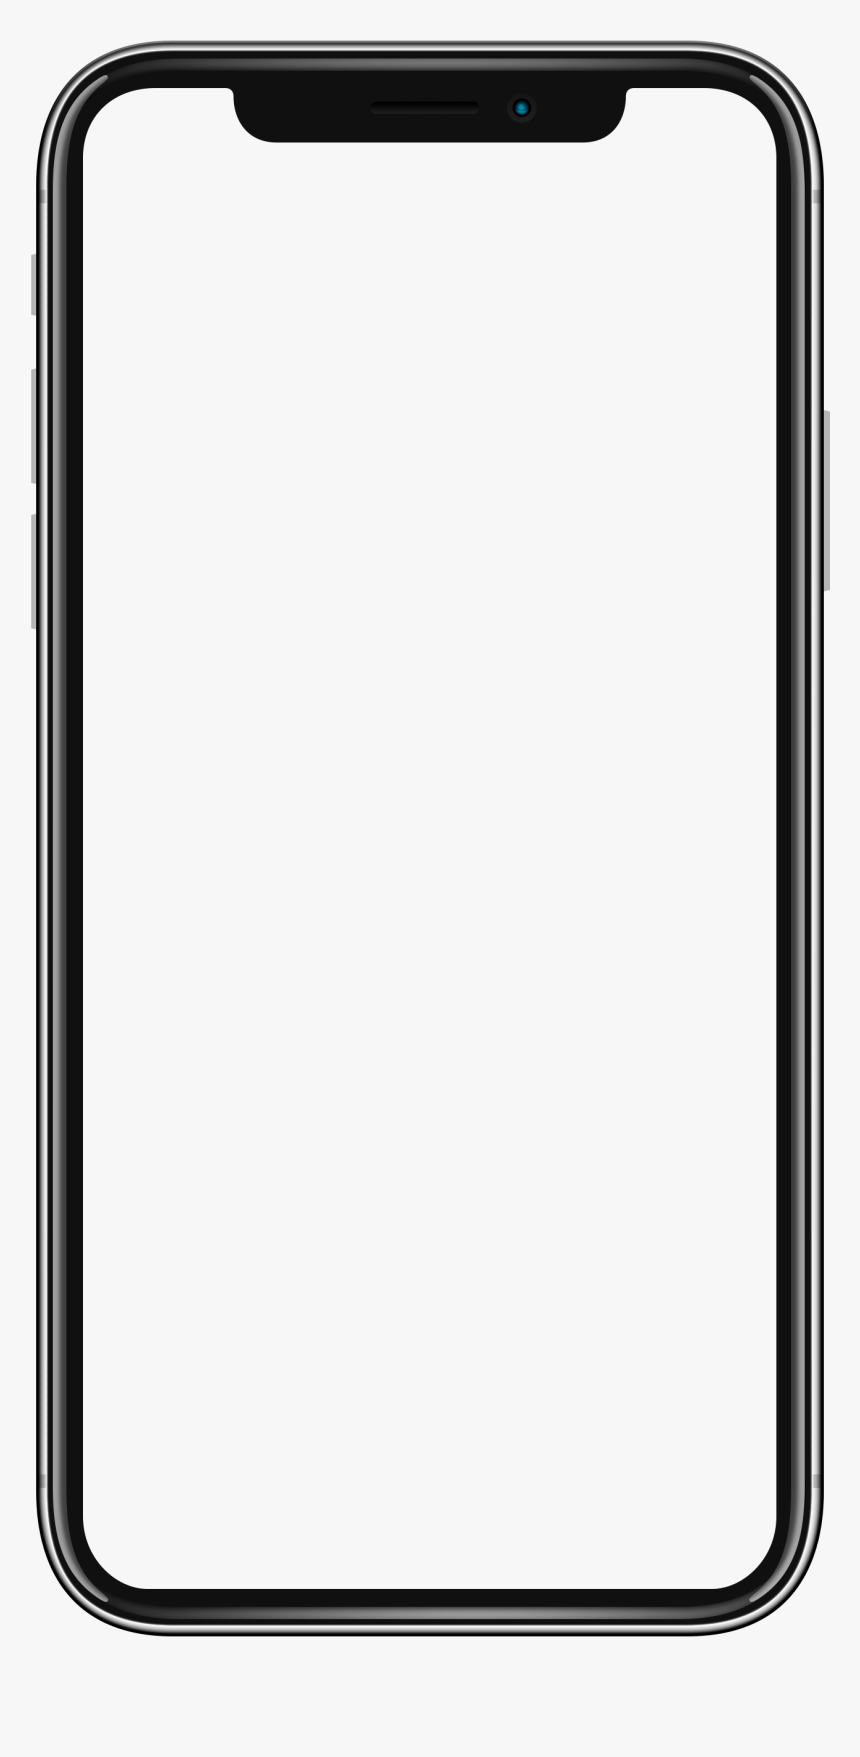 Iphone Frame Png - Iphone X Transparent Background, Png Download, Free Download